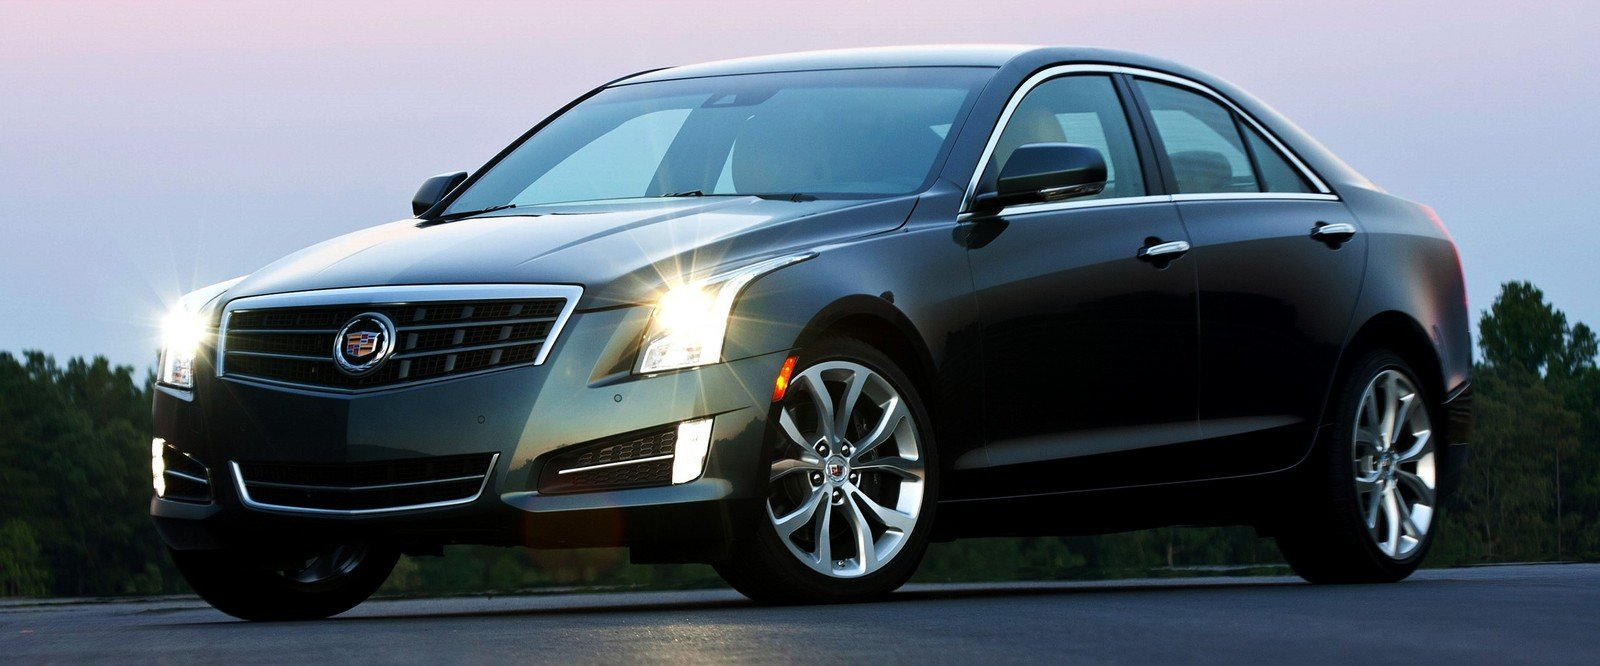 2014 cadillac ats picture 514214 car review top speed. Black Bedroom Furniture Sets. Home Design Ideas